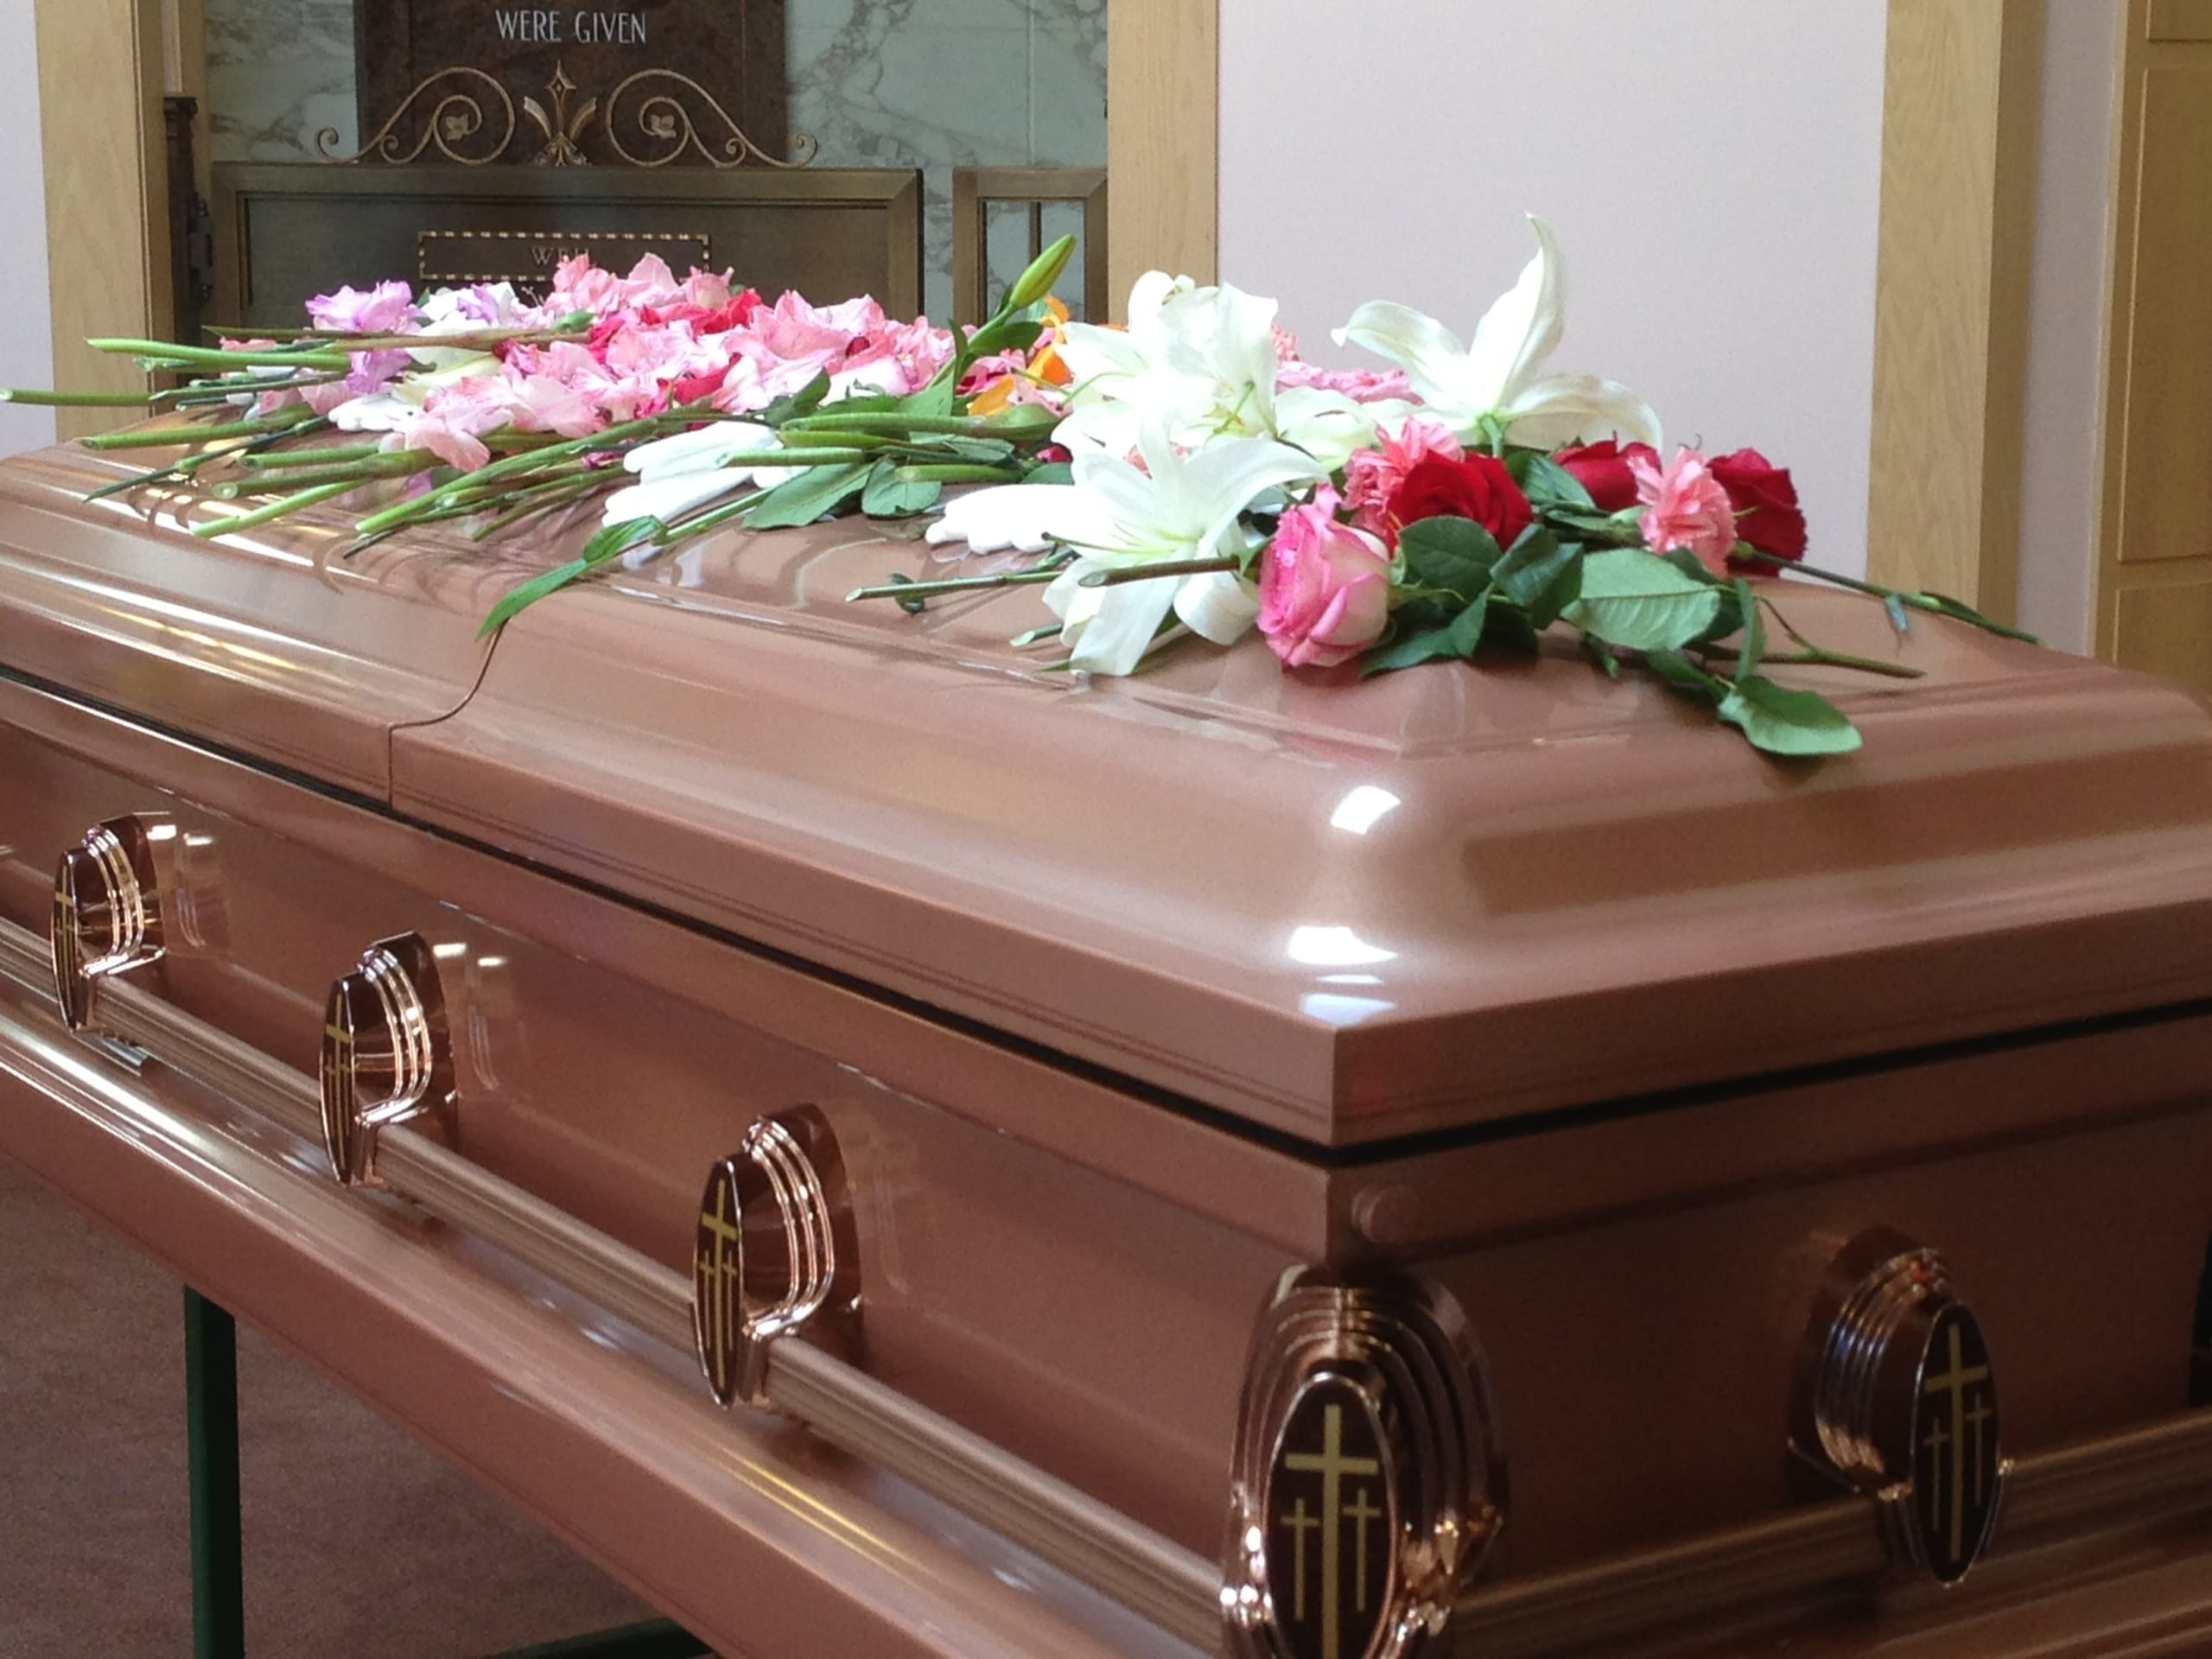 How Do We Cope with Personal Loss?